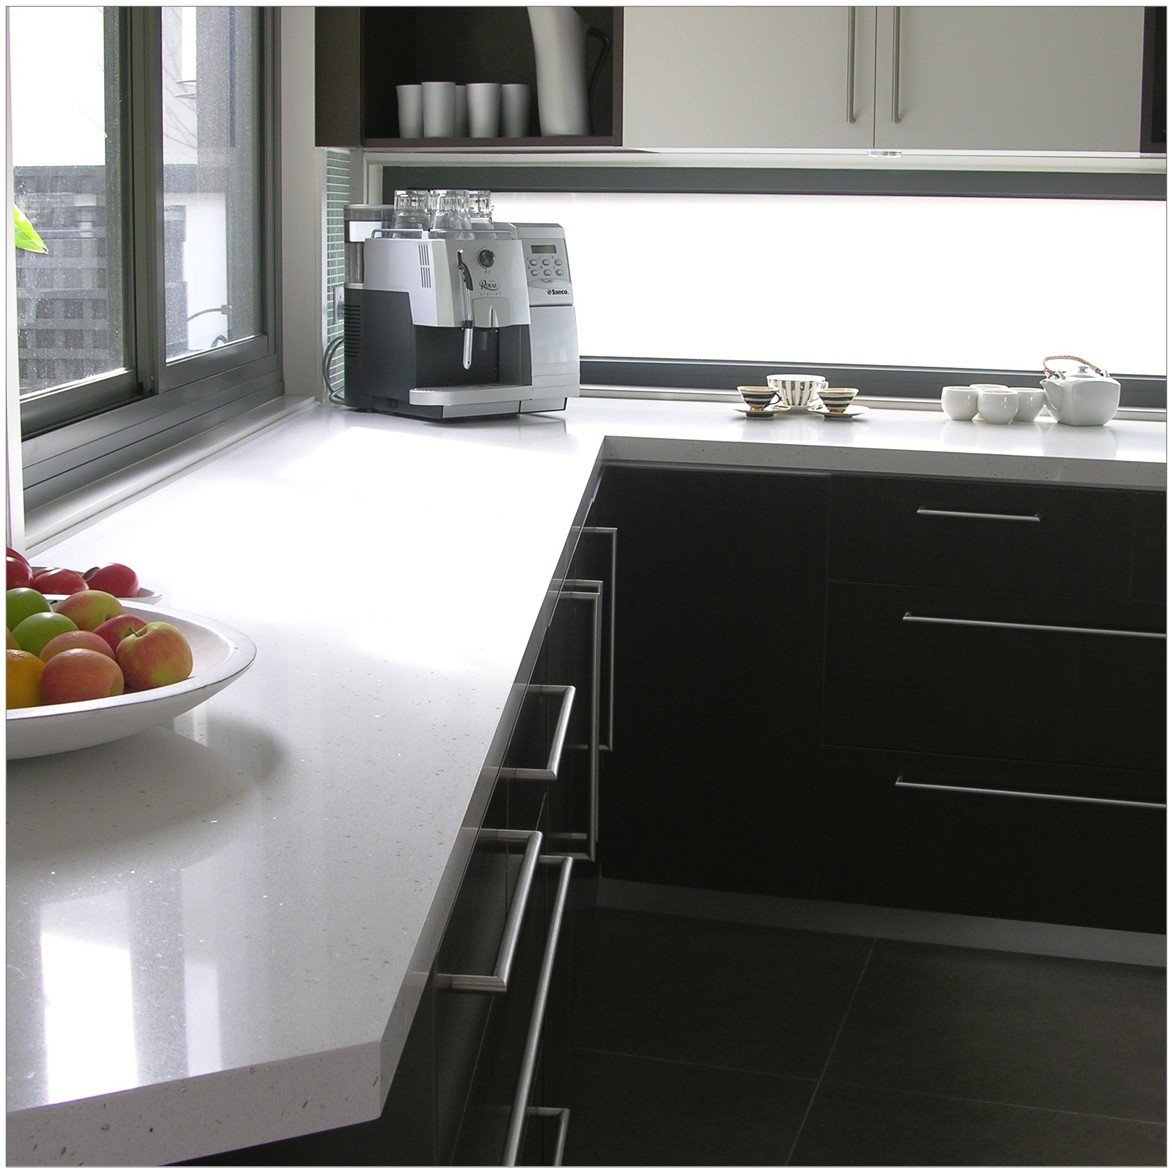 White colour quartz surface installed on the storage cabinets